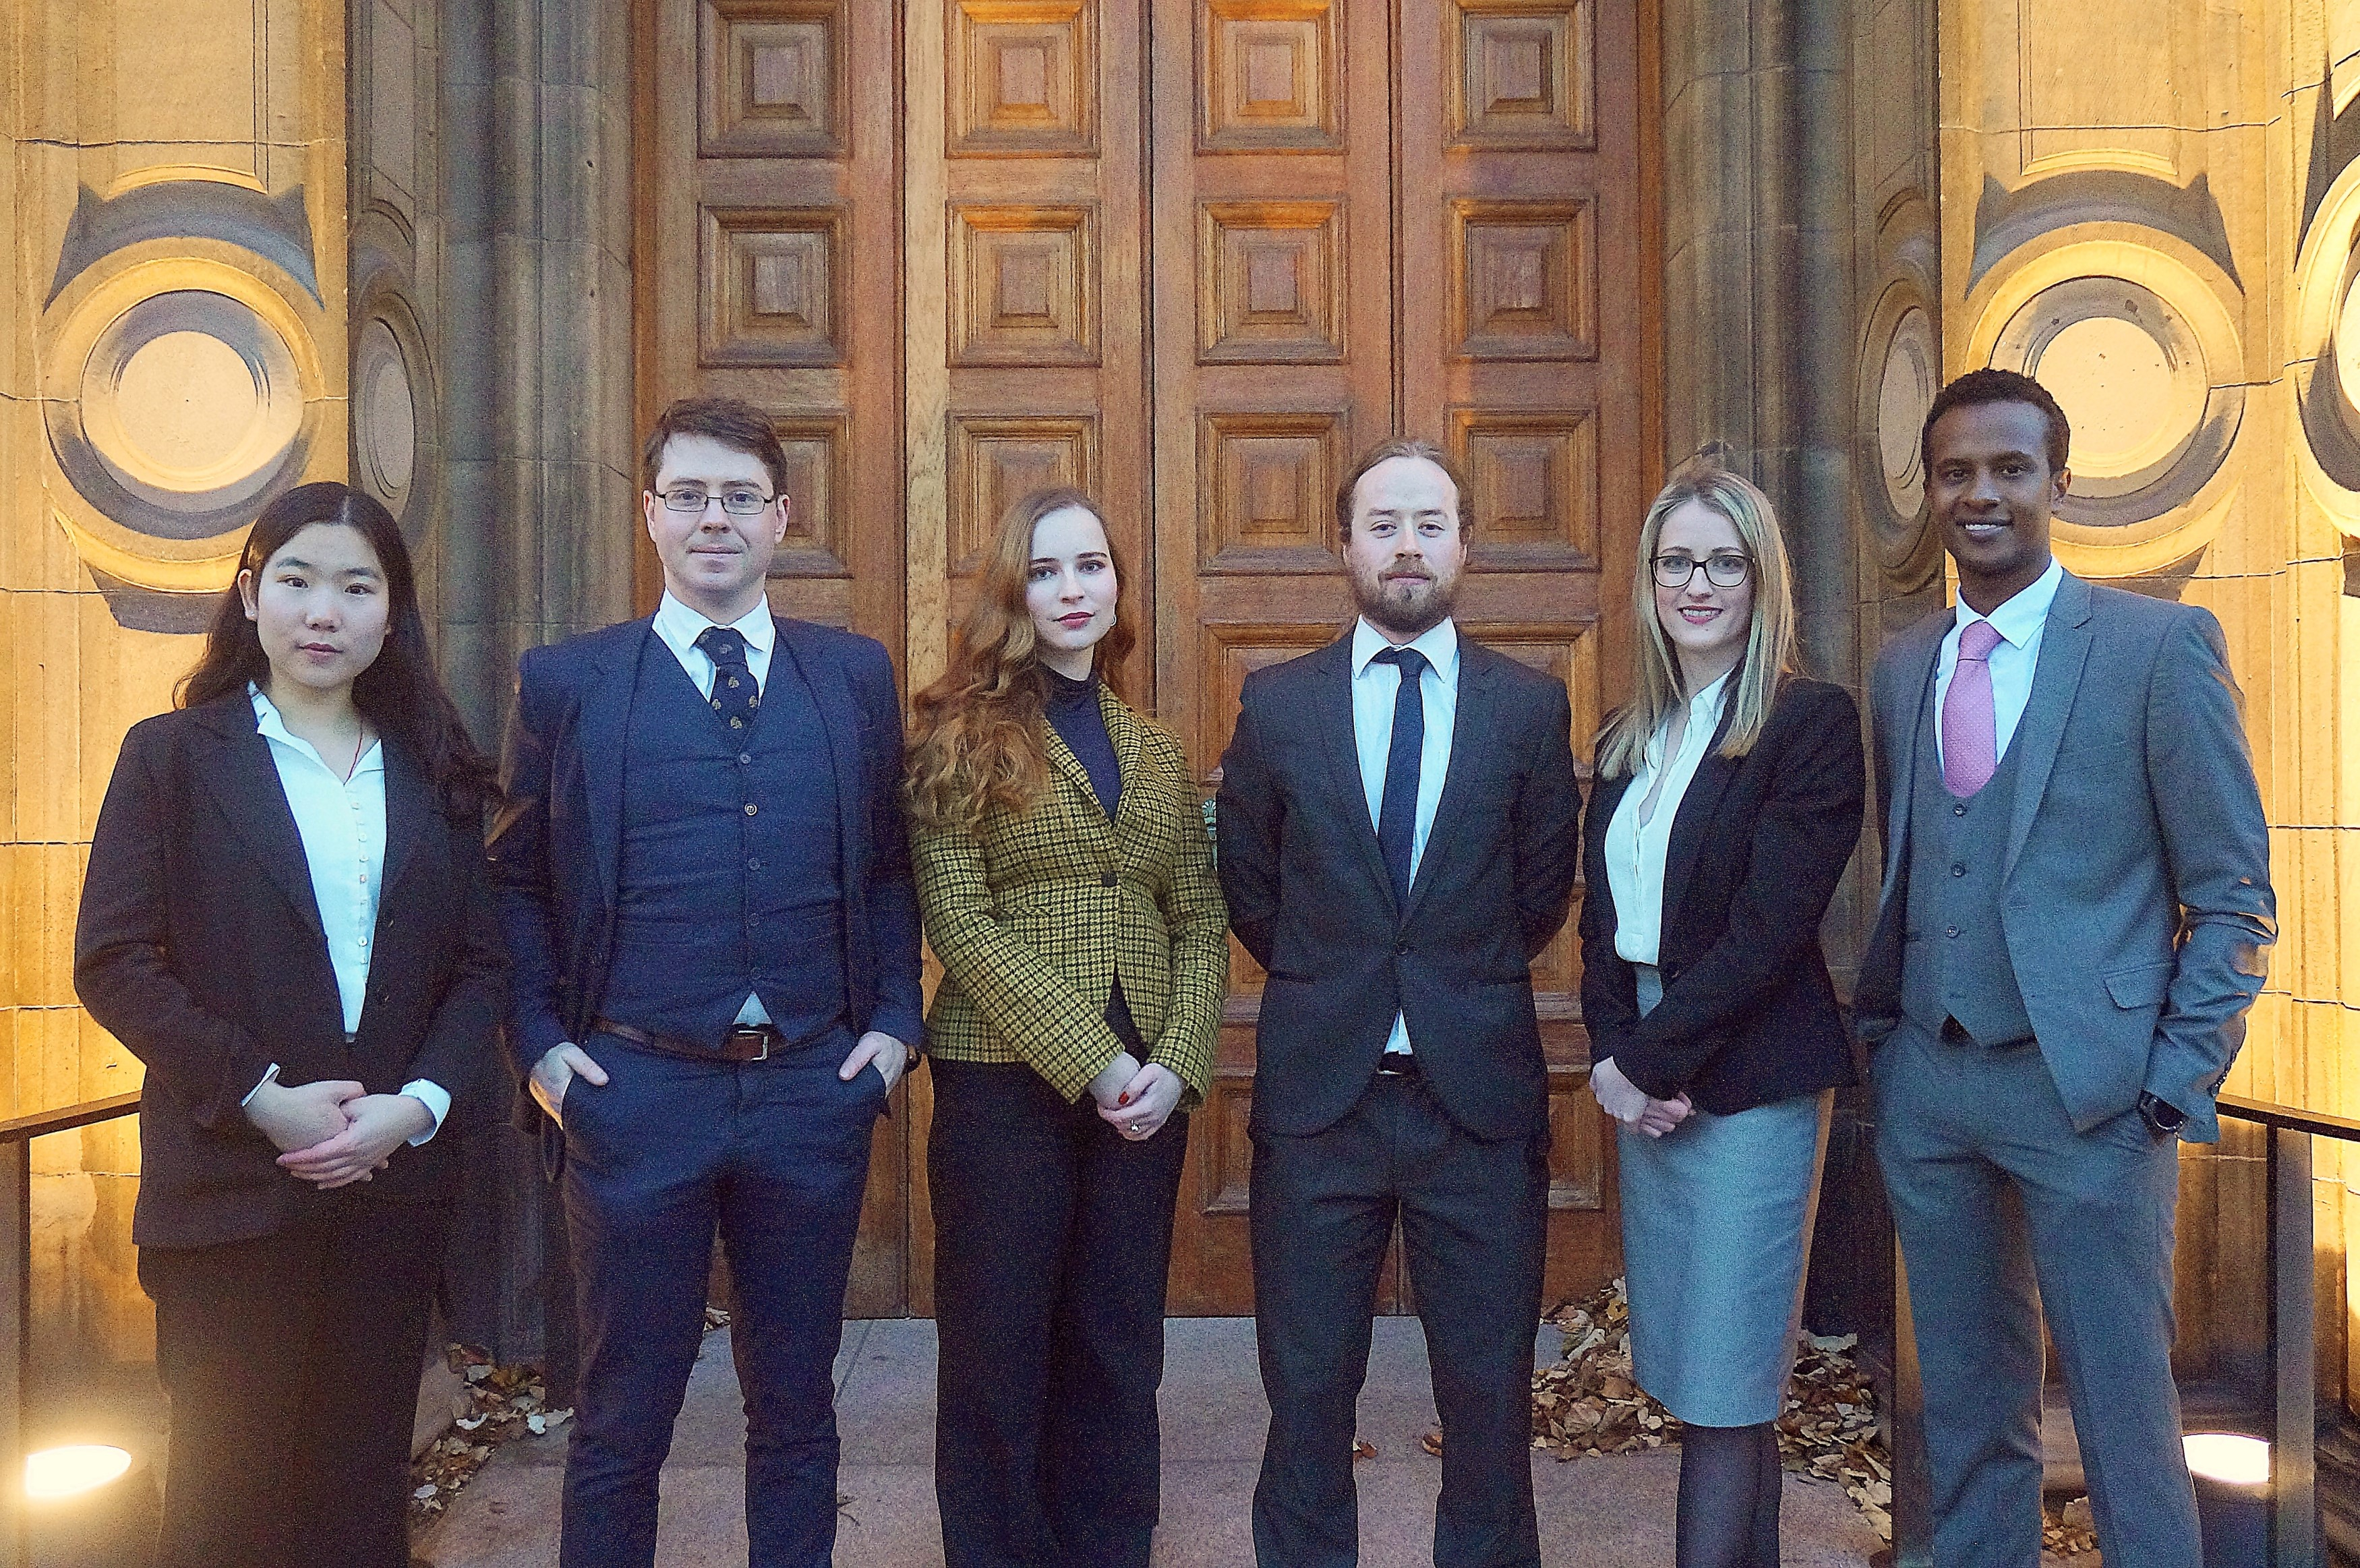 University of Edinburgh Vis Moot Team 2018 - 2019